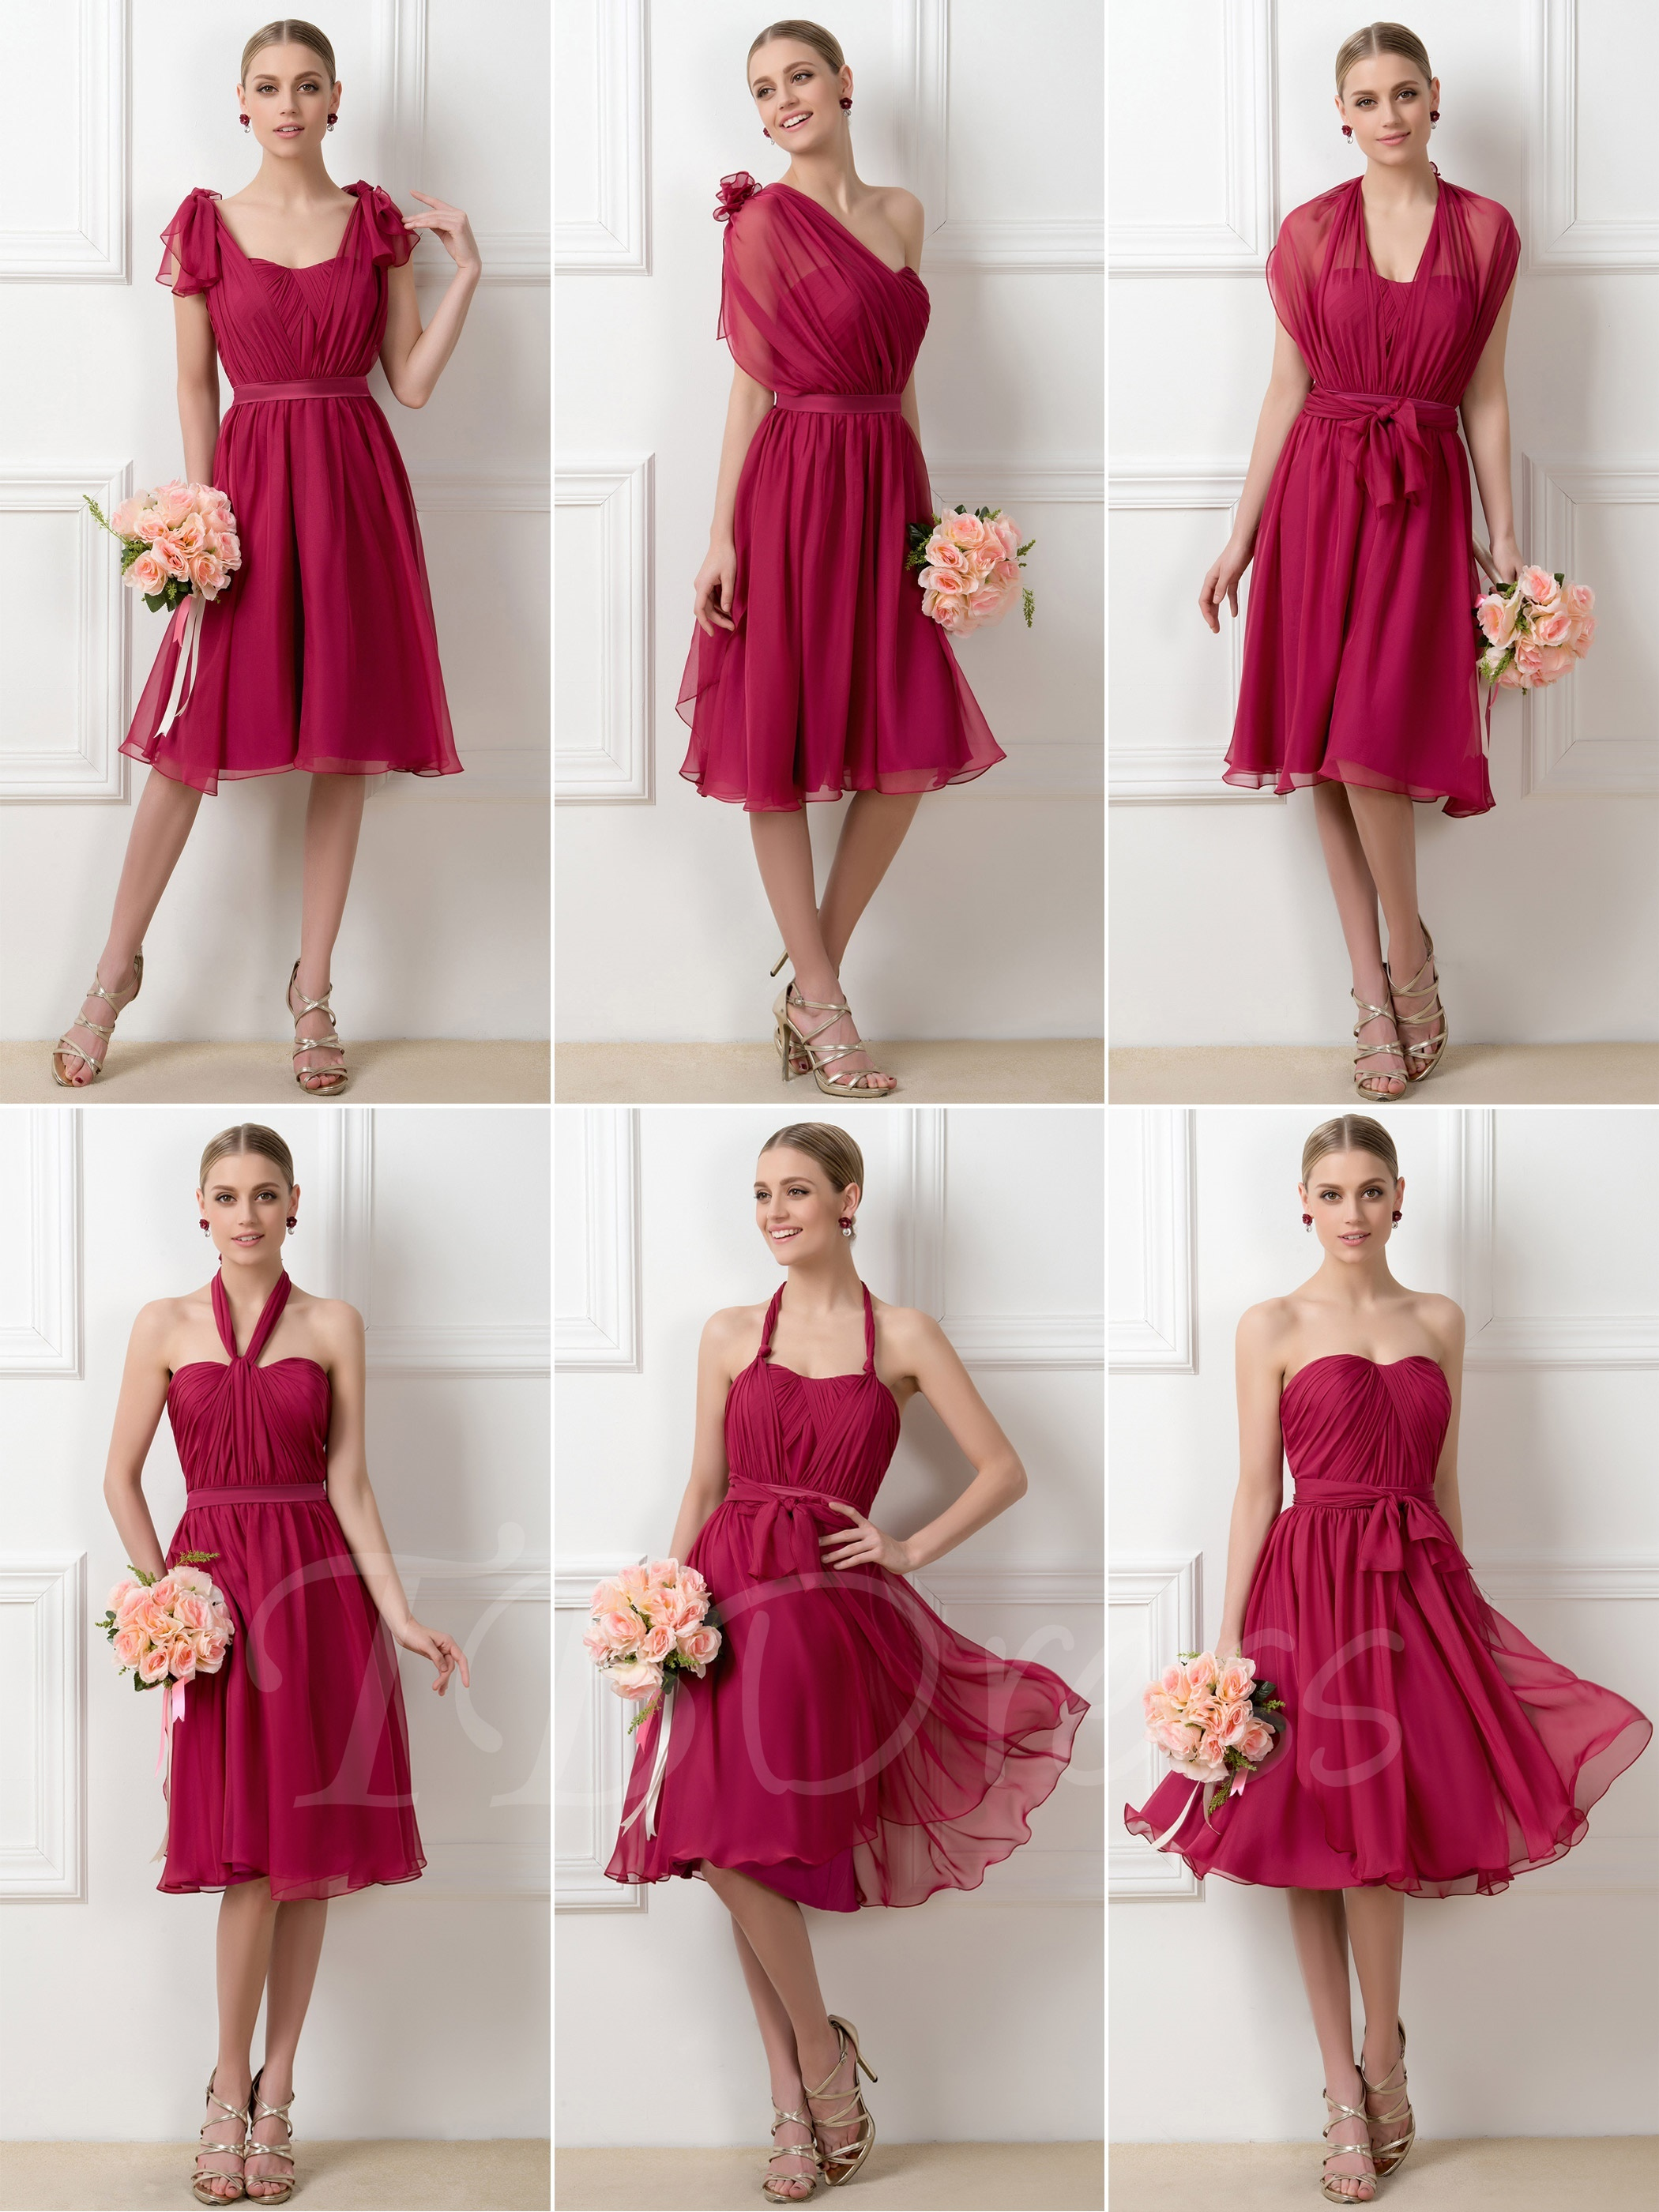 aaefda00fae03 F170 A-Line Tea-Length Convertible Short Bridesmaid Dress,Short Bridesmaid  Dress on Luulla